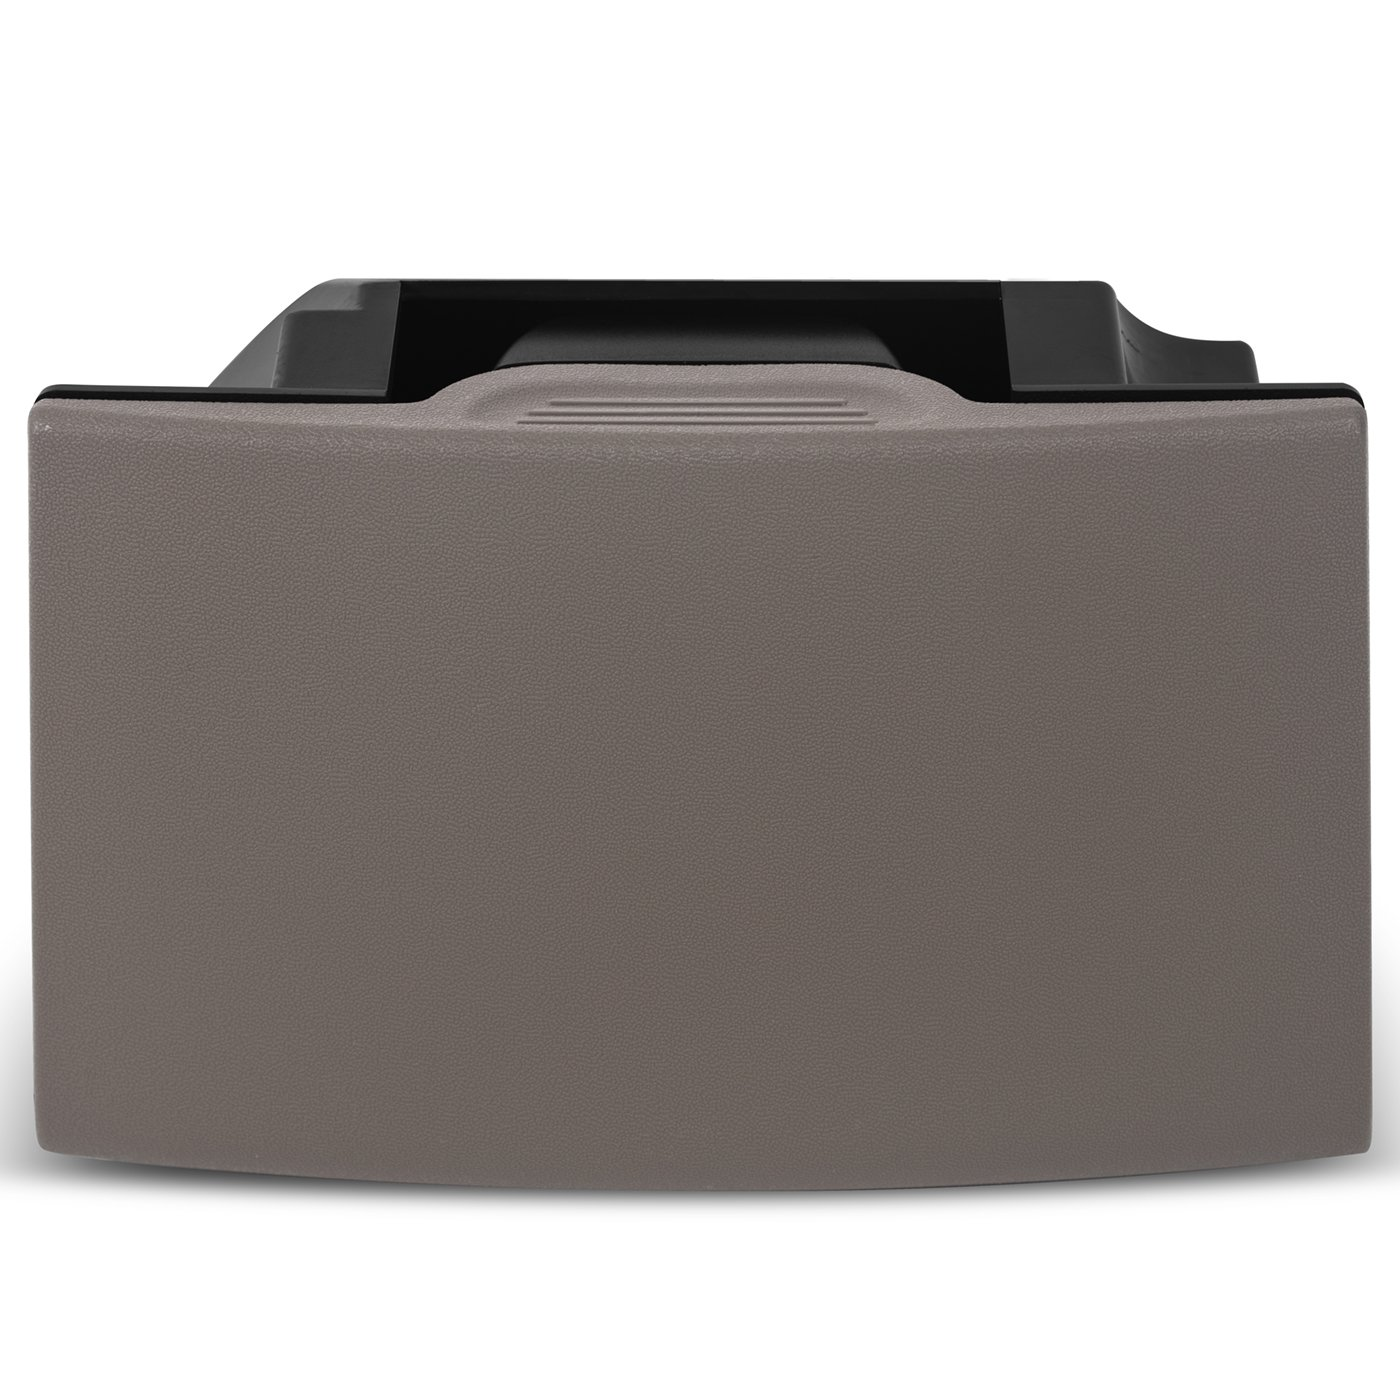 Gray OxGord Cup Holder Insert for 05-12 Pathfinder 05-15 Xterra 05-19 Frontier Replaces 96965-ZP00D Rear Seat Center Console Box Assy-Cup